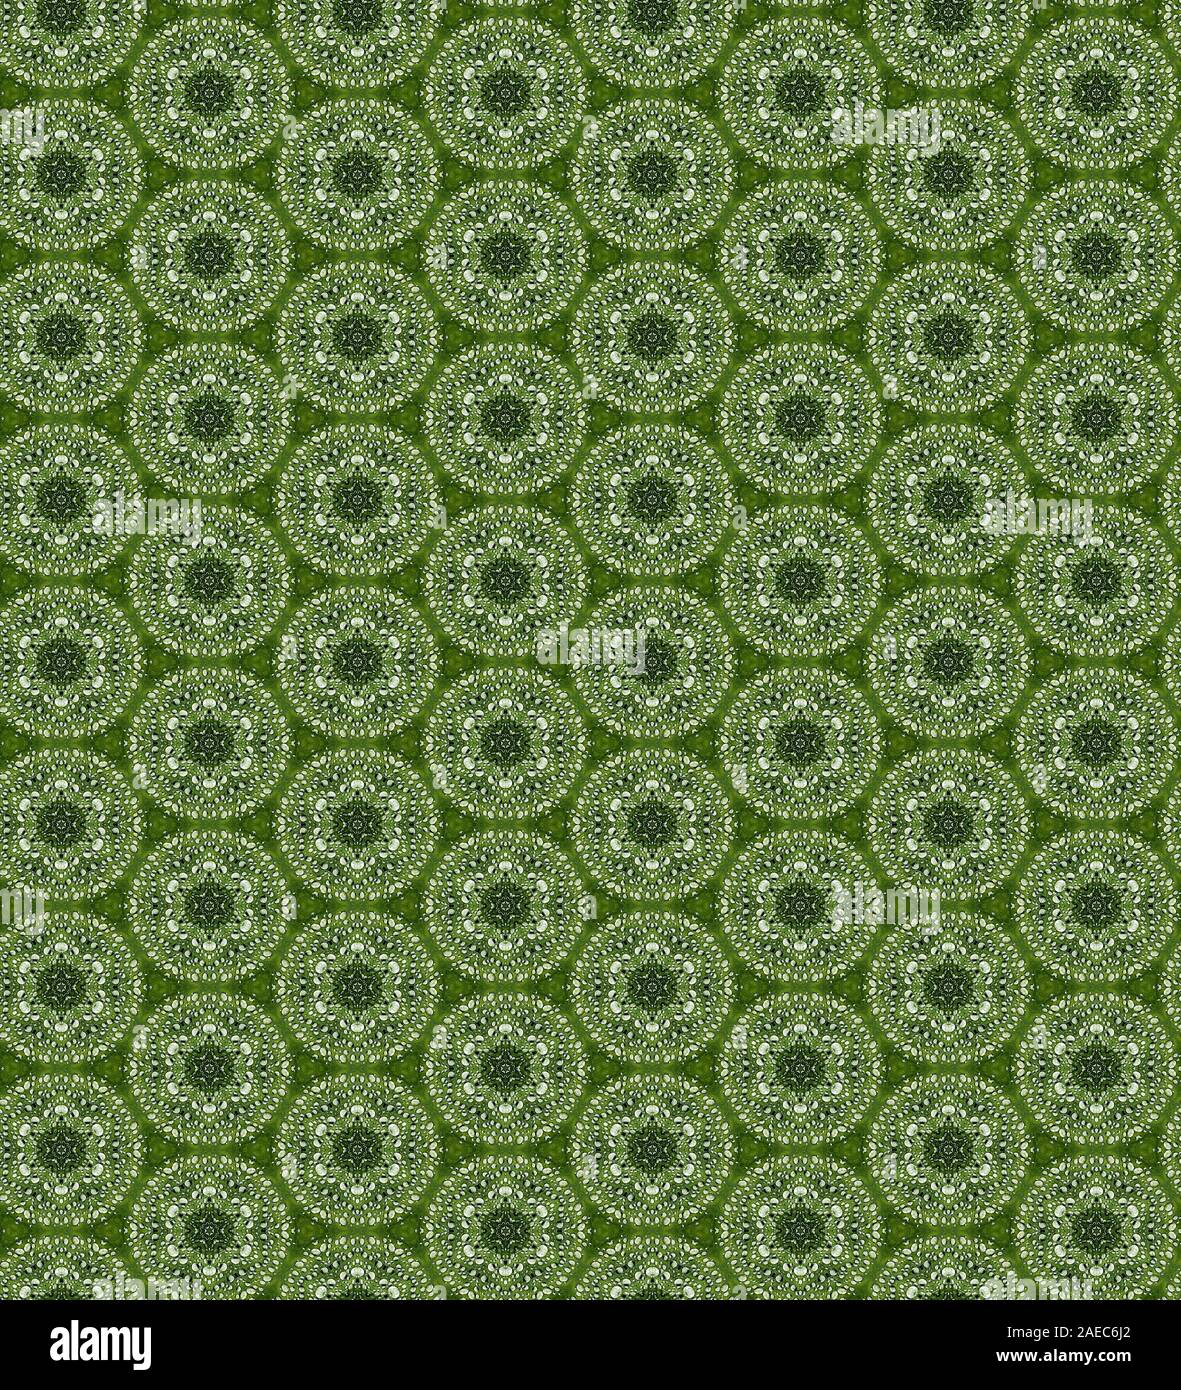 Seamles repeating pattern - Computer Graphic Illustration Stock Photo